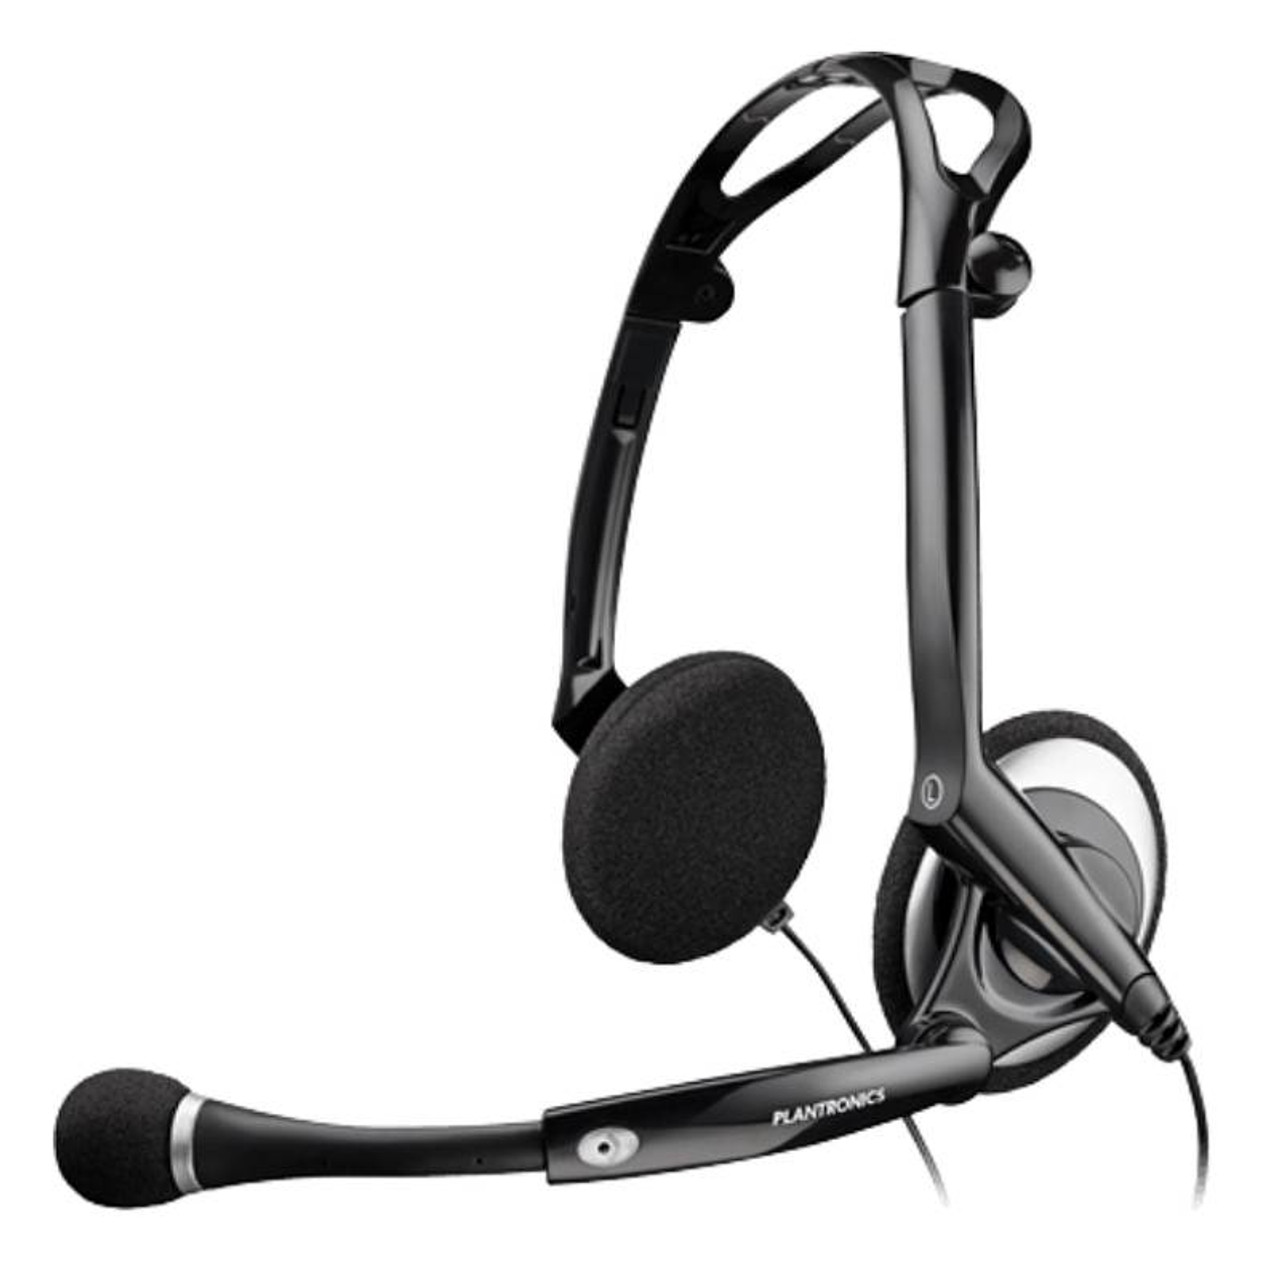 Image for Plantronics .Audio 400 DSP PC Foldable Stereo USB Headset CX Computer Superstore